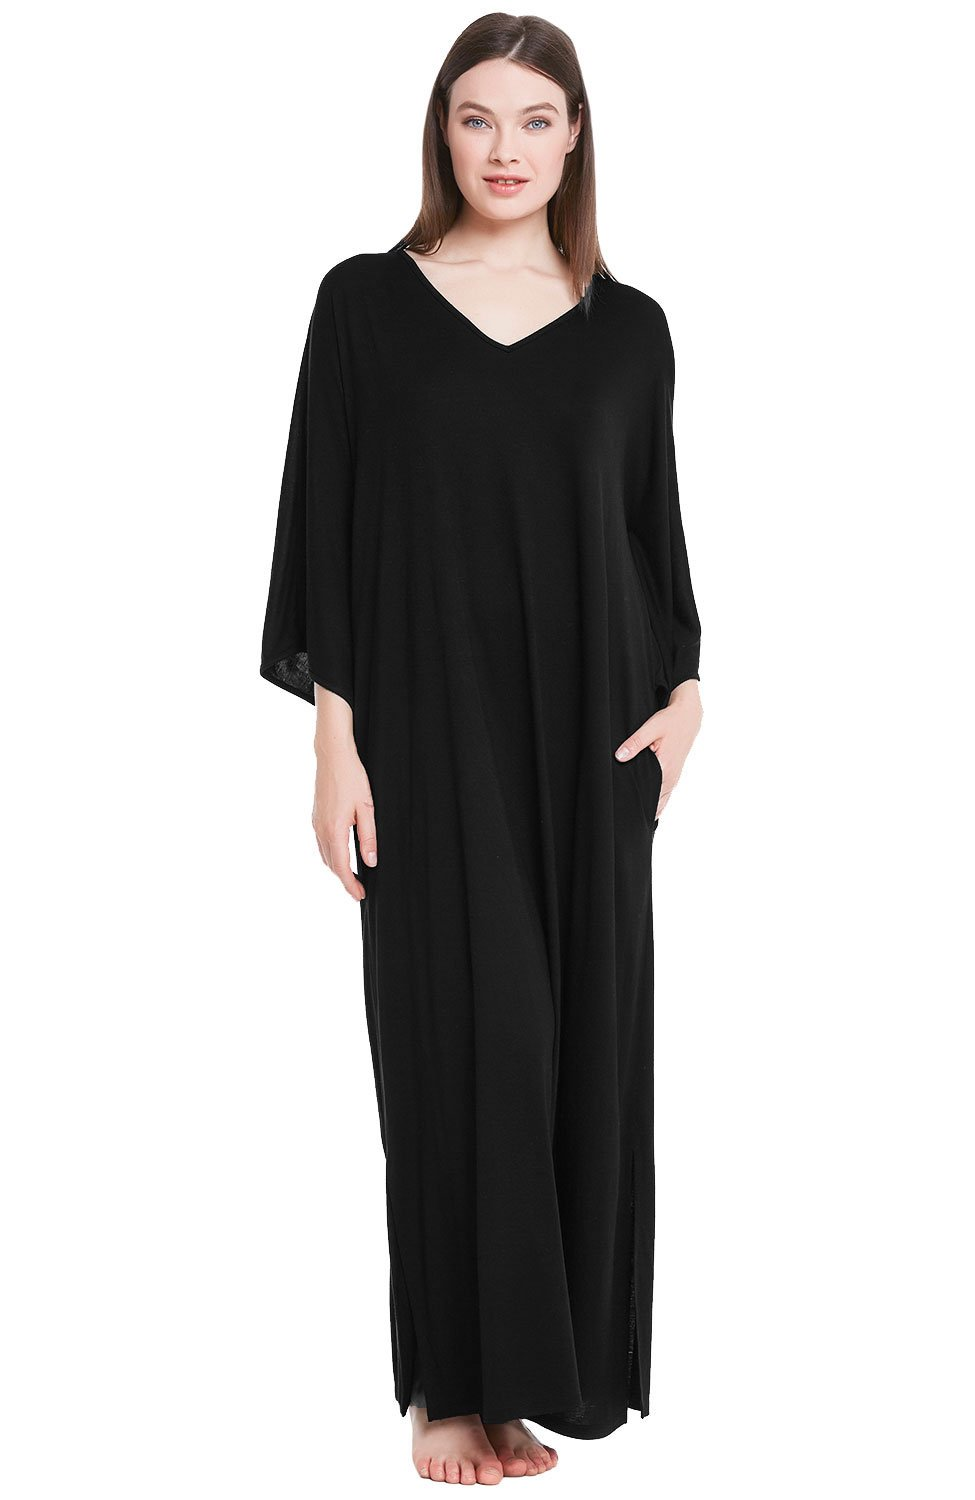 Alexander Del Rossa Womens Modal Knit Nightgown, Oversized Loose Fit Sleep Gown, X-Large Black (A0411BLKXL)